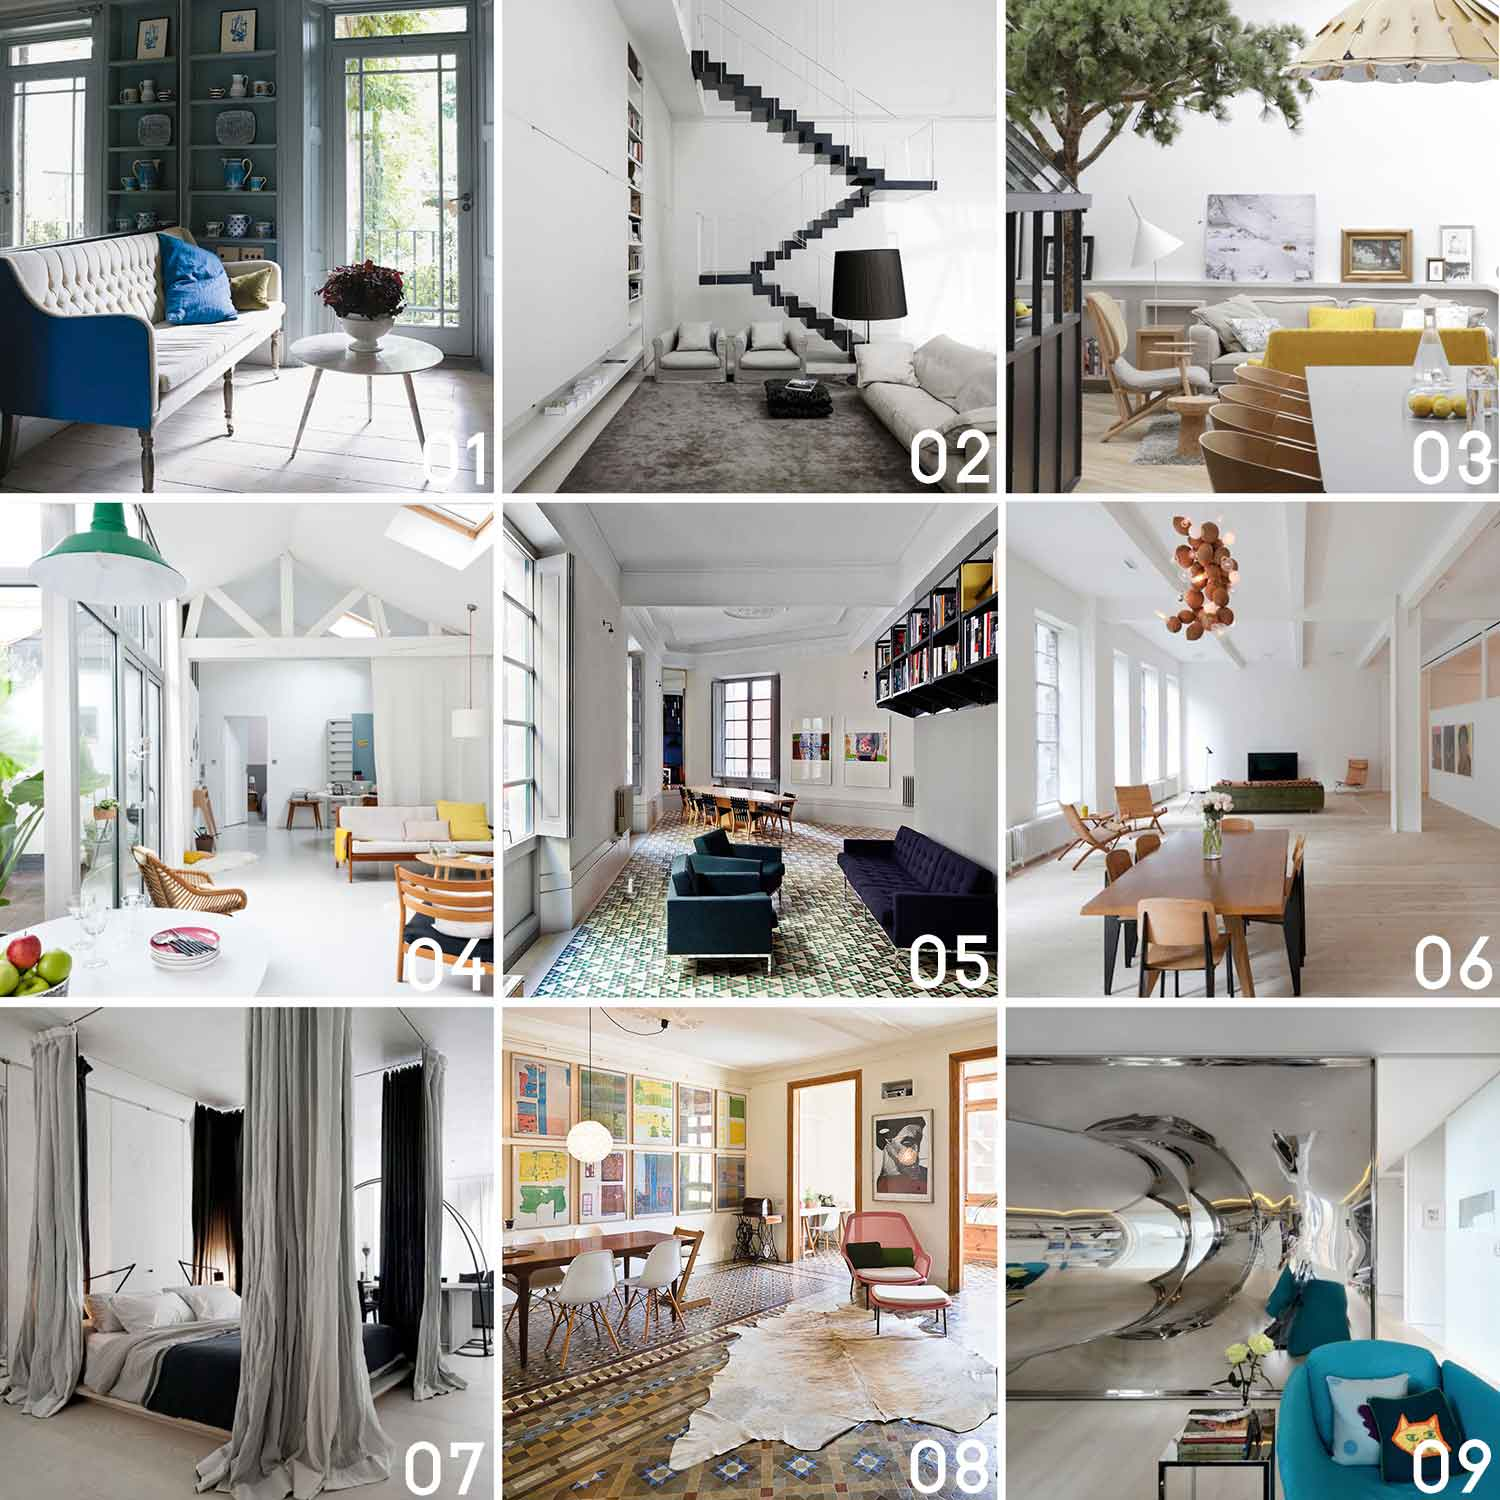 Yellowtrace 2013 Archive | Residential Interior Design